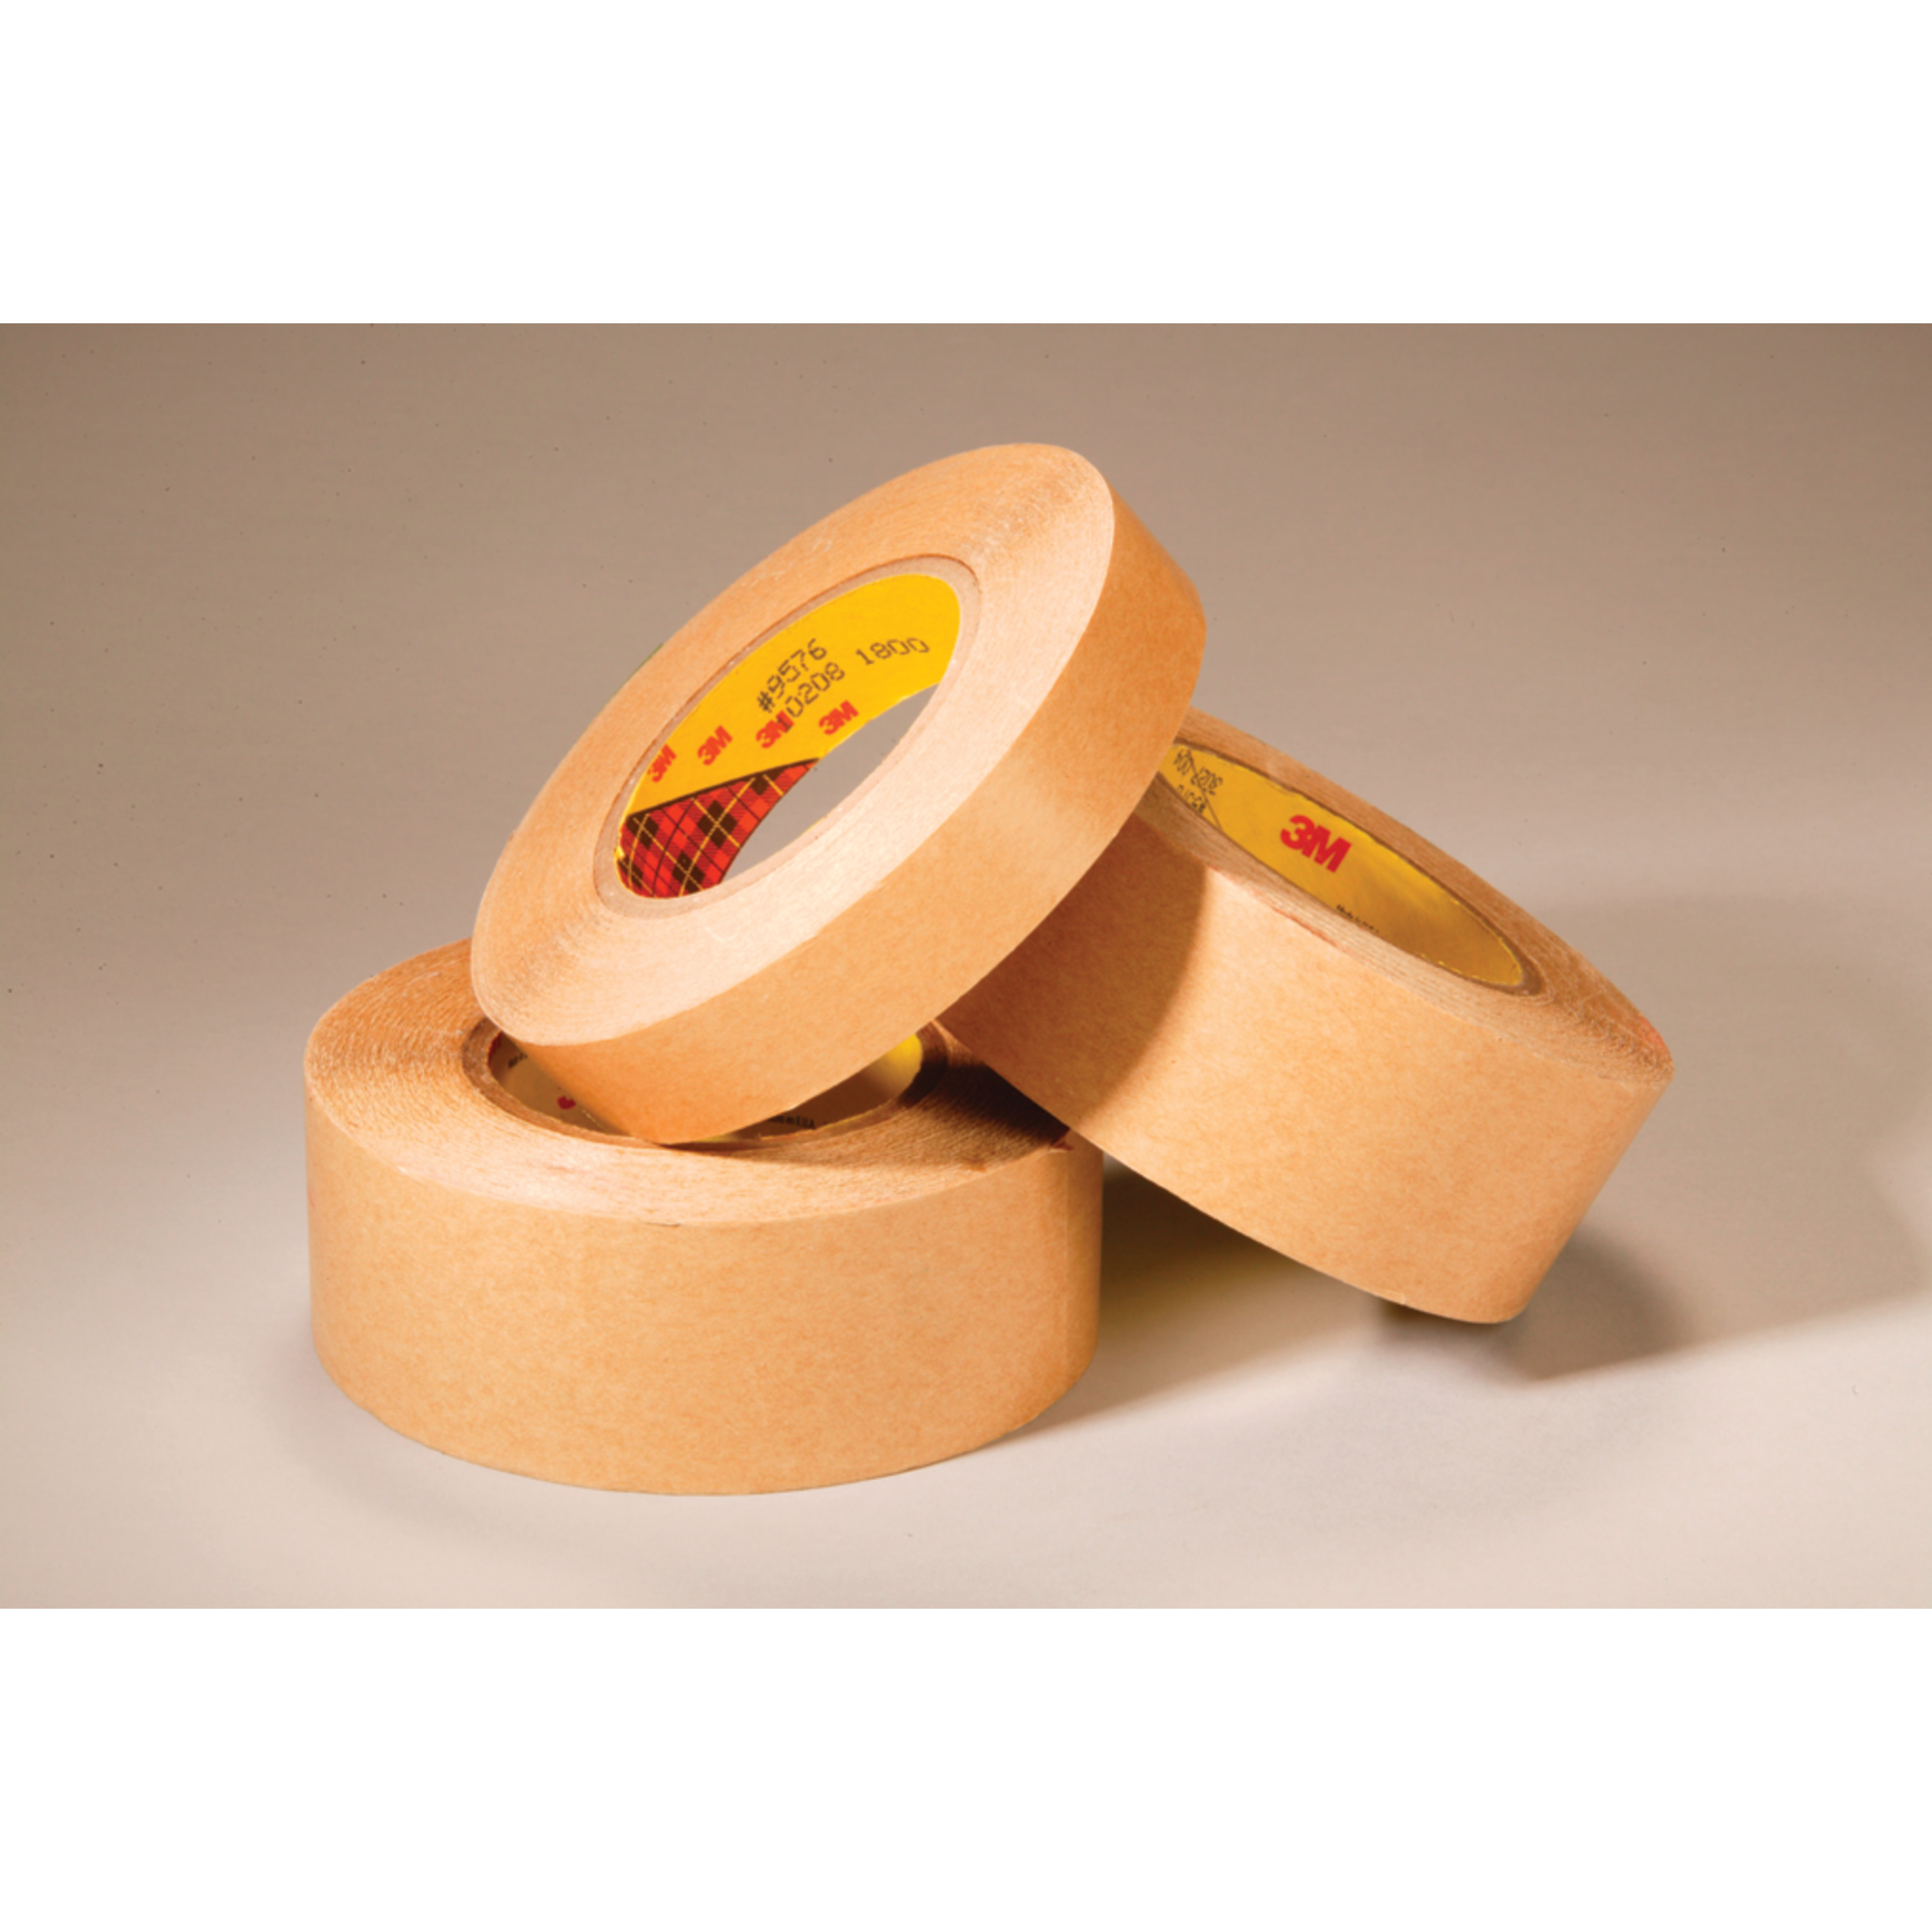 3M™ Double Coated Tape 9576, Clear, 4 mil, Roll, Config